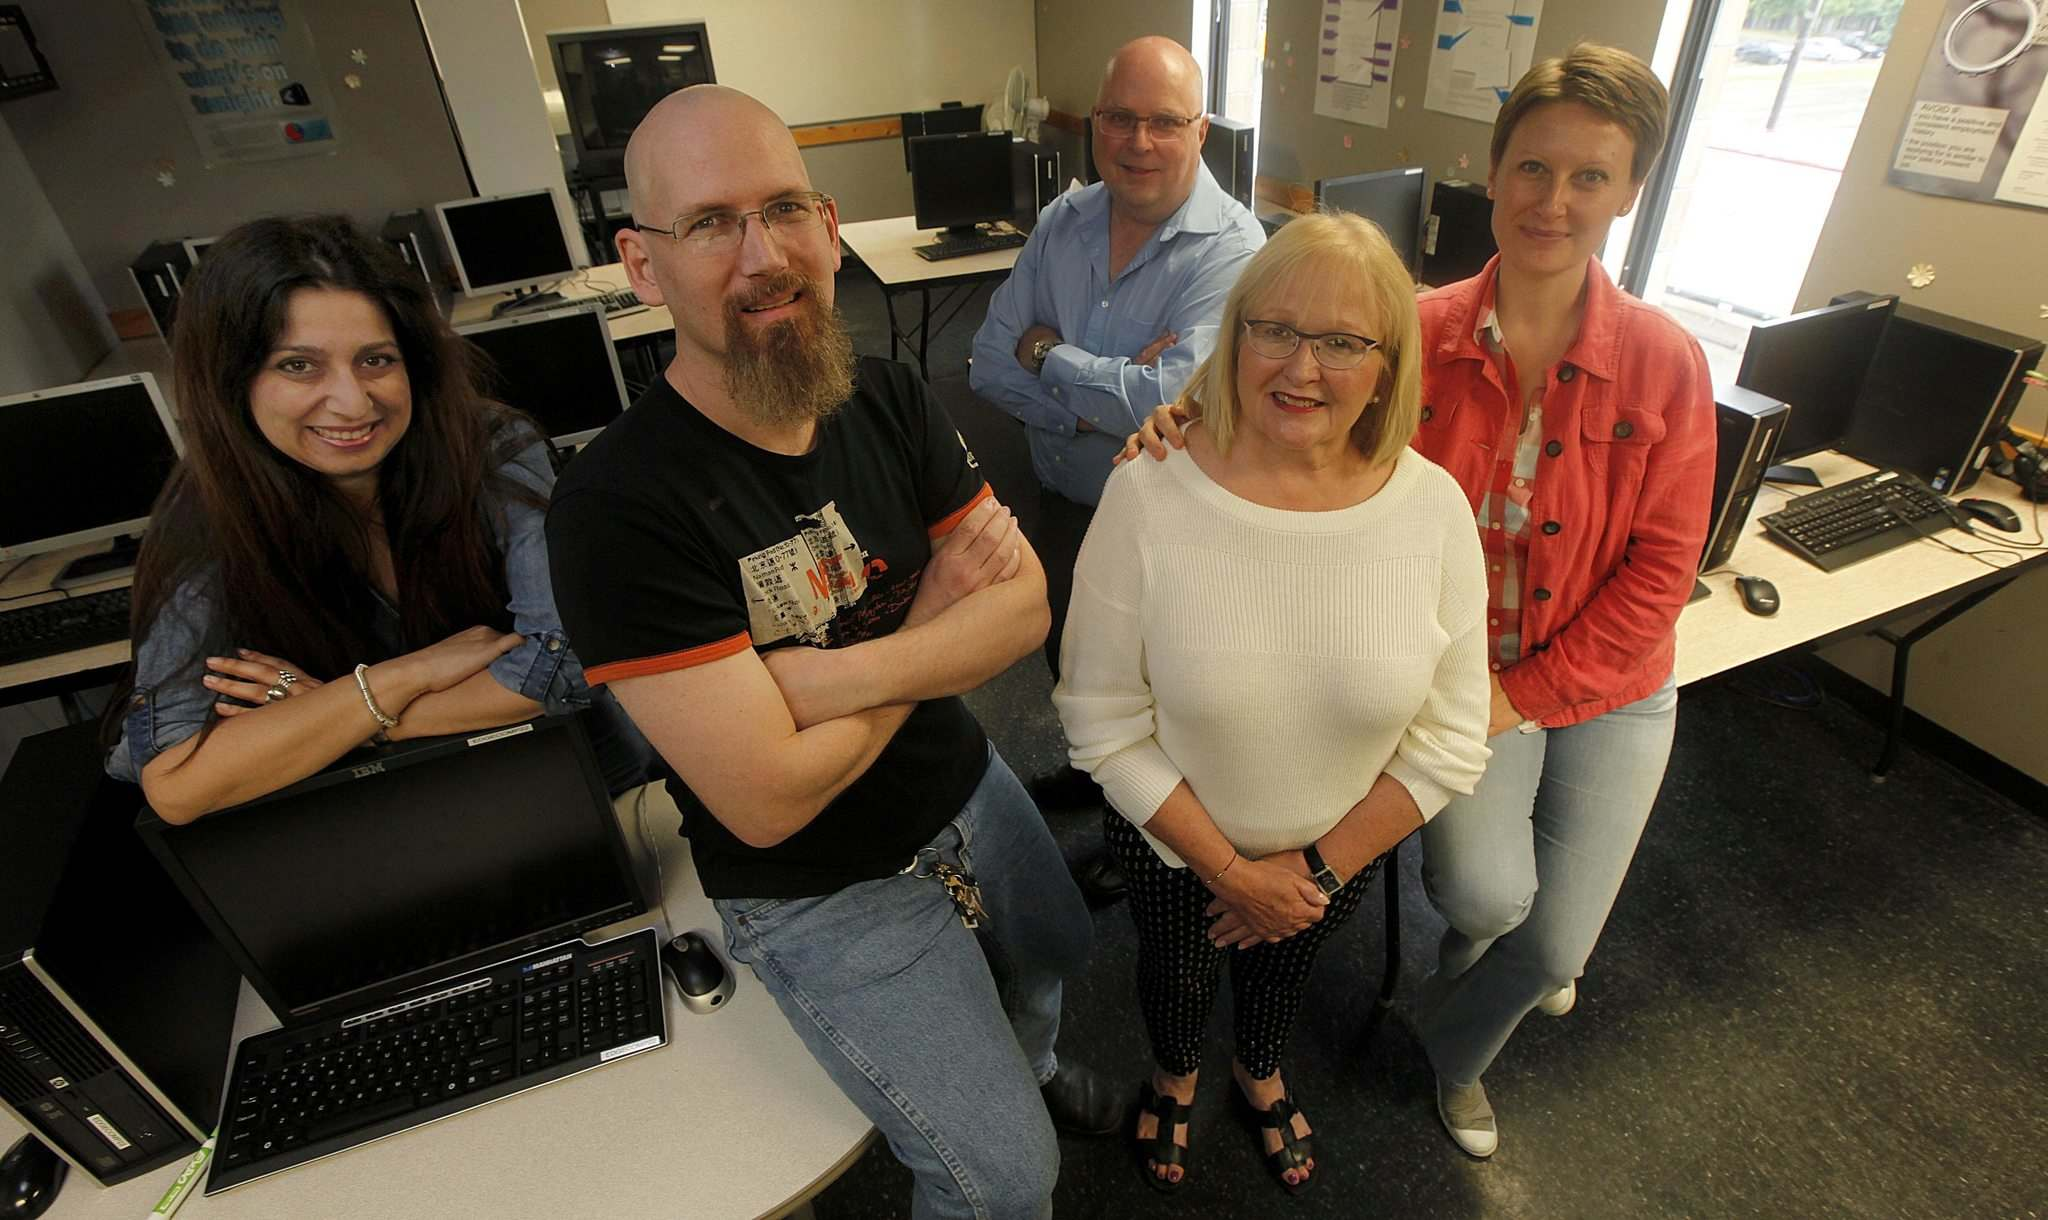 PHIL HOSSACK / WINNIPEG FREE PRESS</p><p>Toula Papagiannopoulos (from left), Jason Hussey, Miles Murphy, Joan Embleton and Elena Cvetkovska help out at Edge Skills Centre.</p>